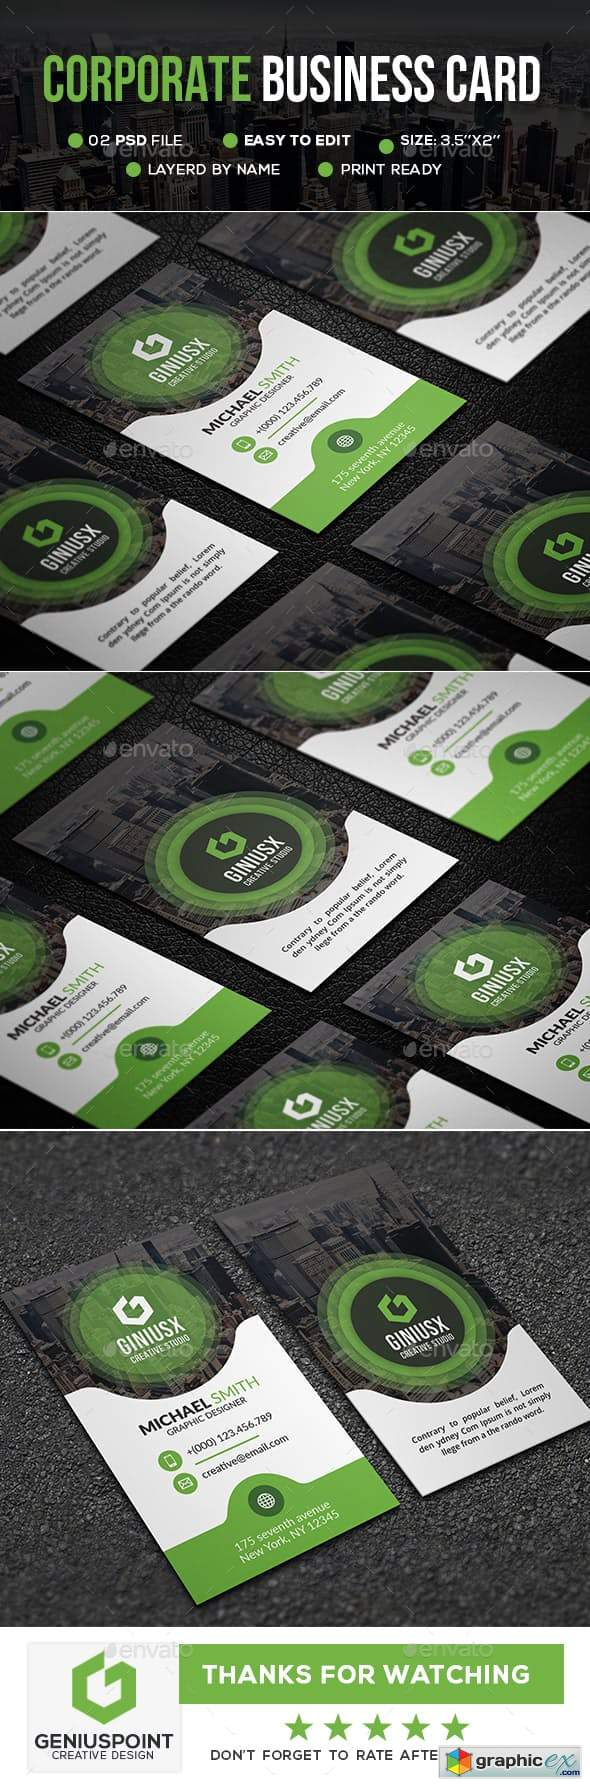 Corporate Business Card 23154587